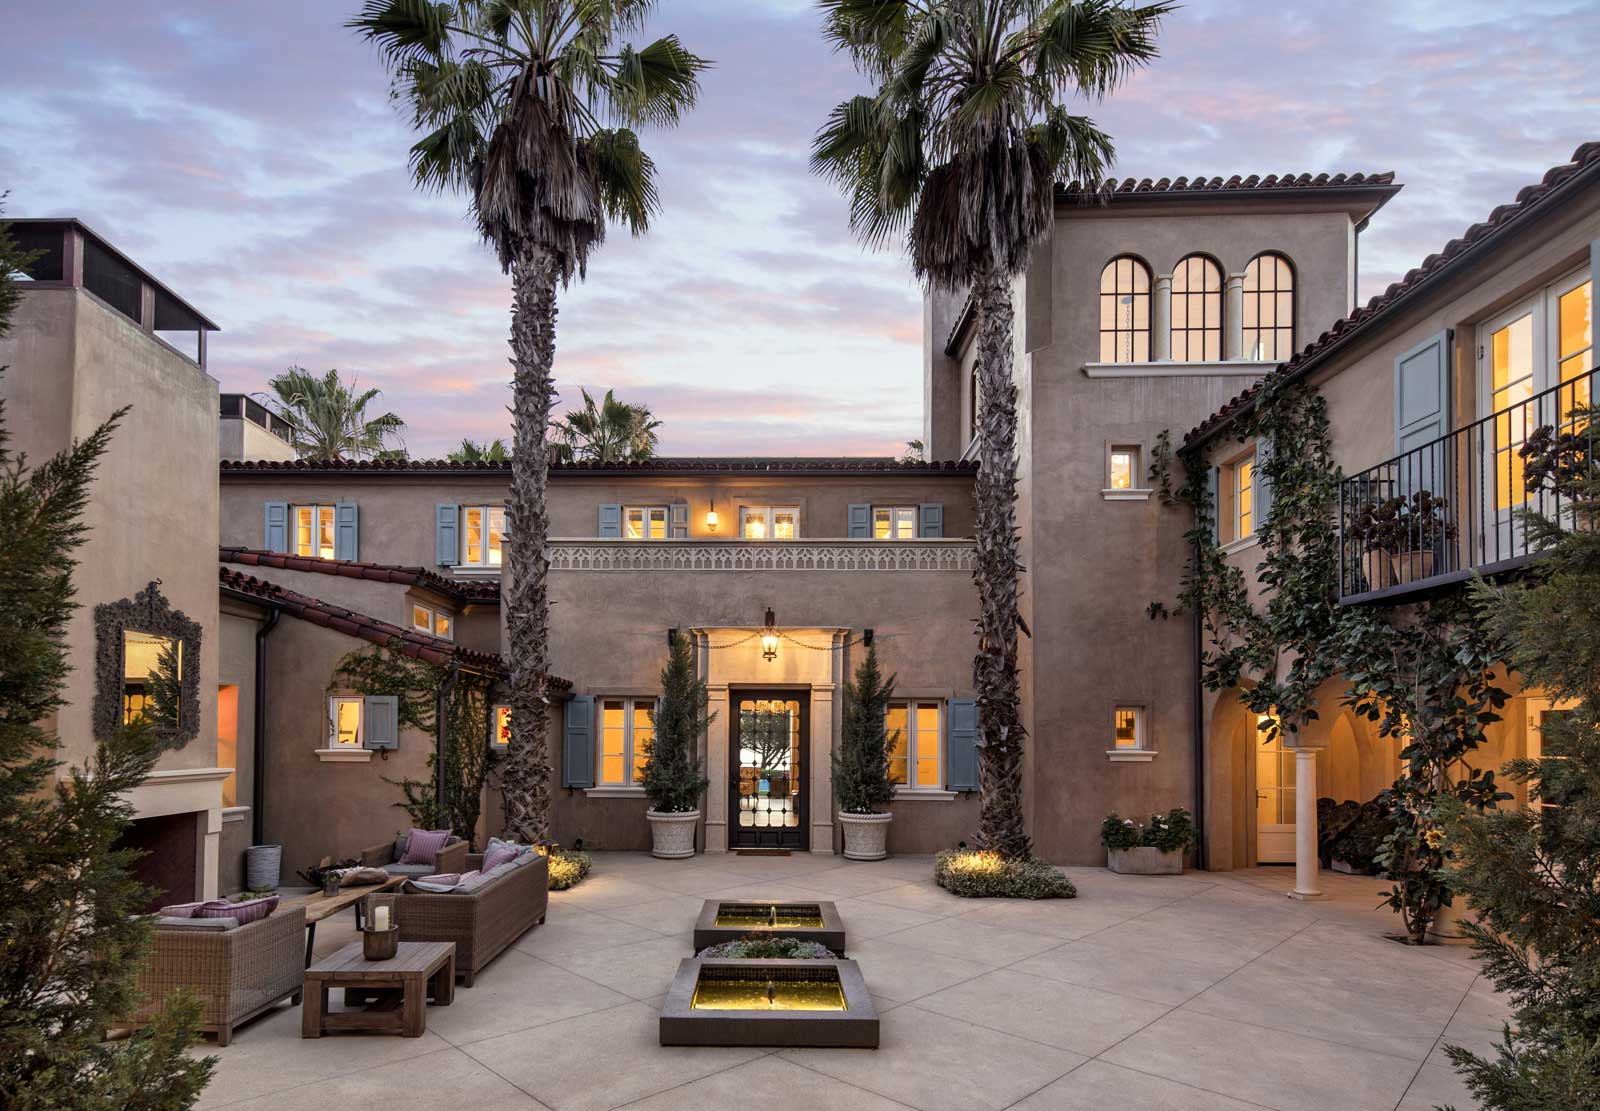 1300185 additionally Mountains Edge as well Traditional Hope Ranch Estate Hiding Modern Amenities In Santa Barbara Usa also Lins Modern Apartment Kaohsiung City Taiwan Designed Pmd moreover 1300185. on ranch modern homes